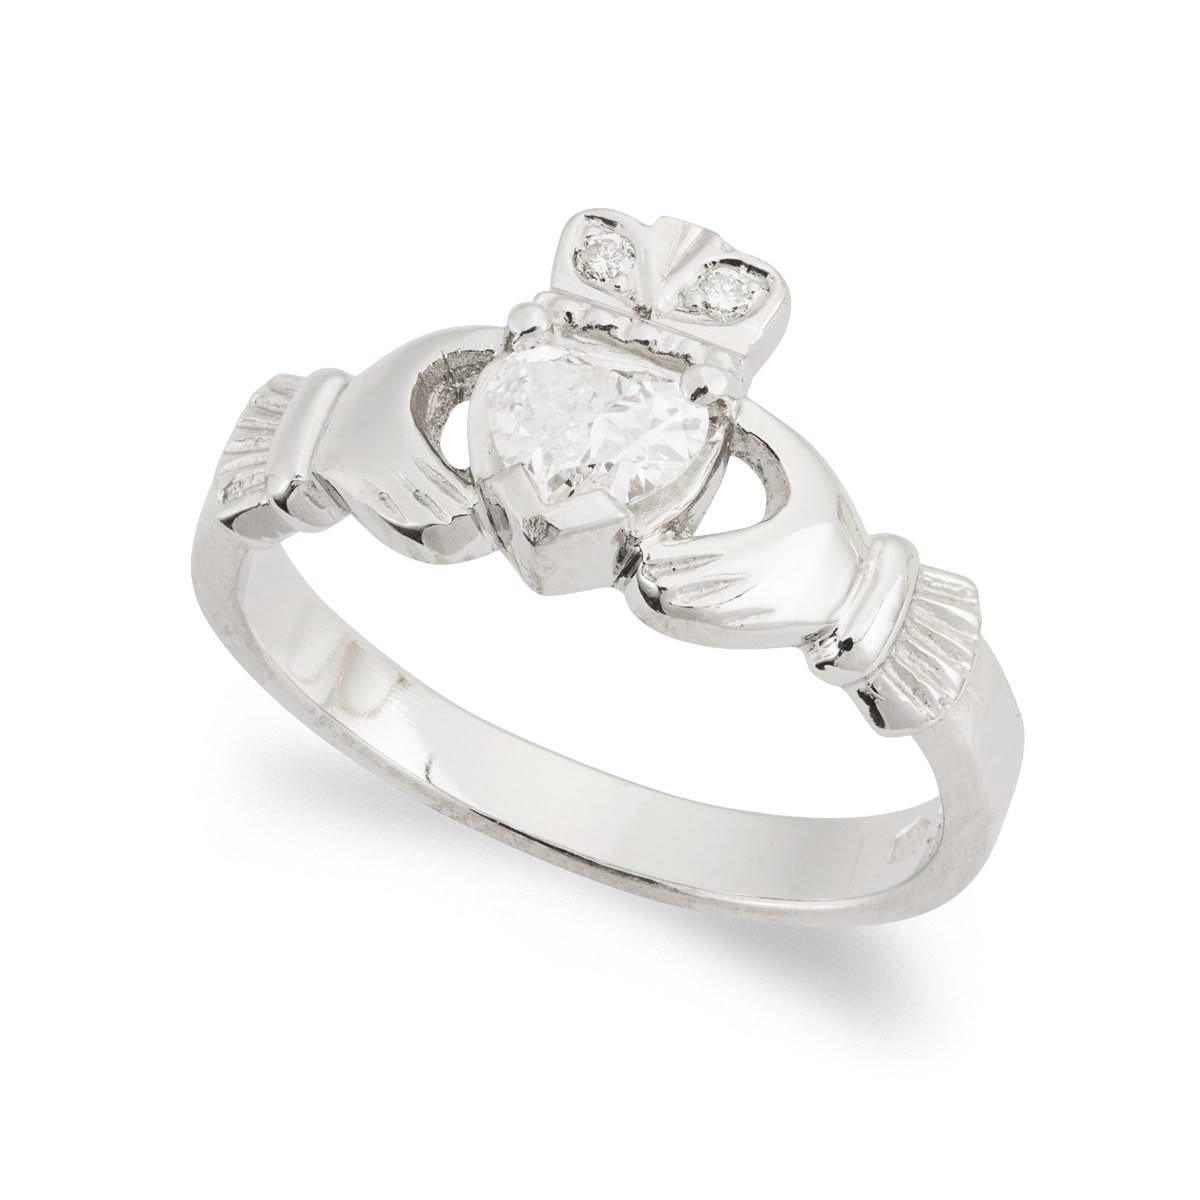 The Ashford Diamond Claddagh Ring In Platinum | Claddagh Jewellers With Claddagh Engagement Rings (View 15 of 15)